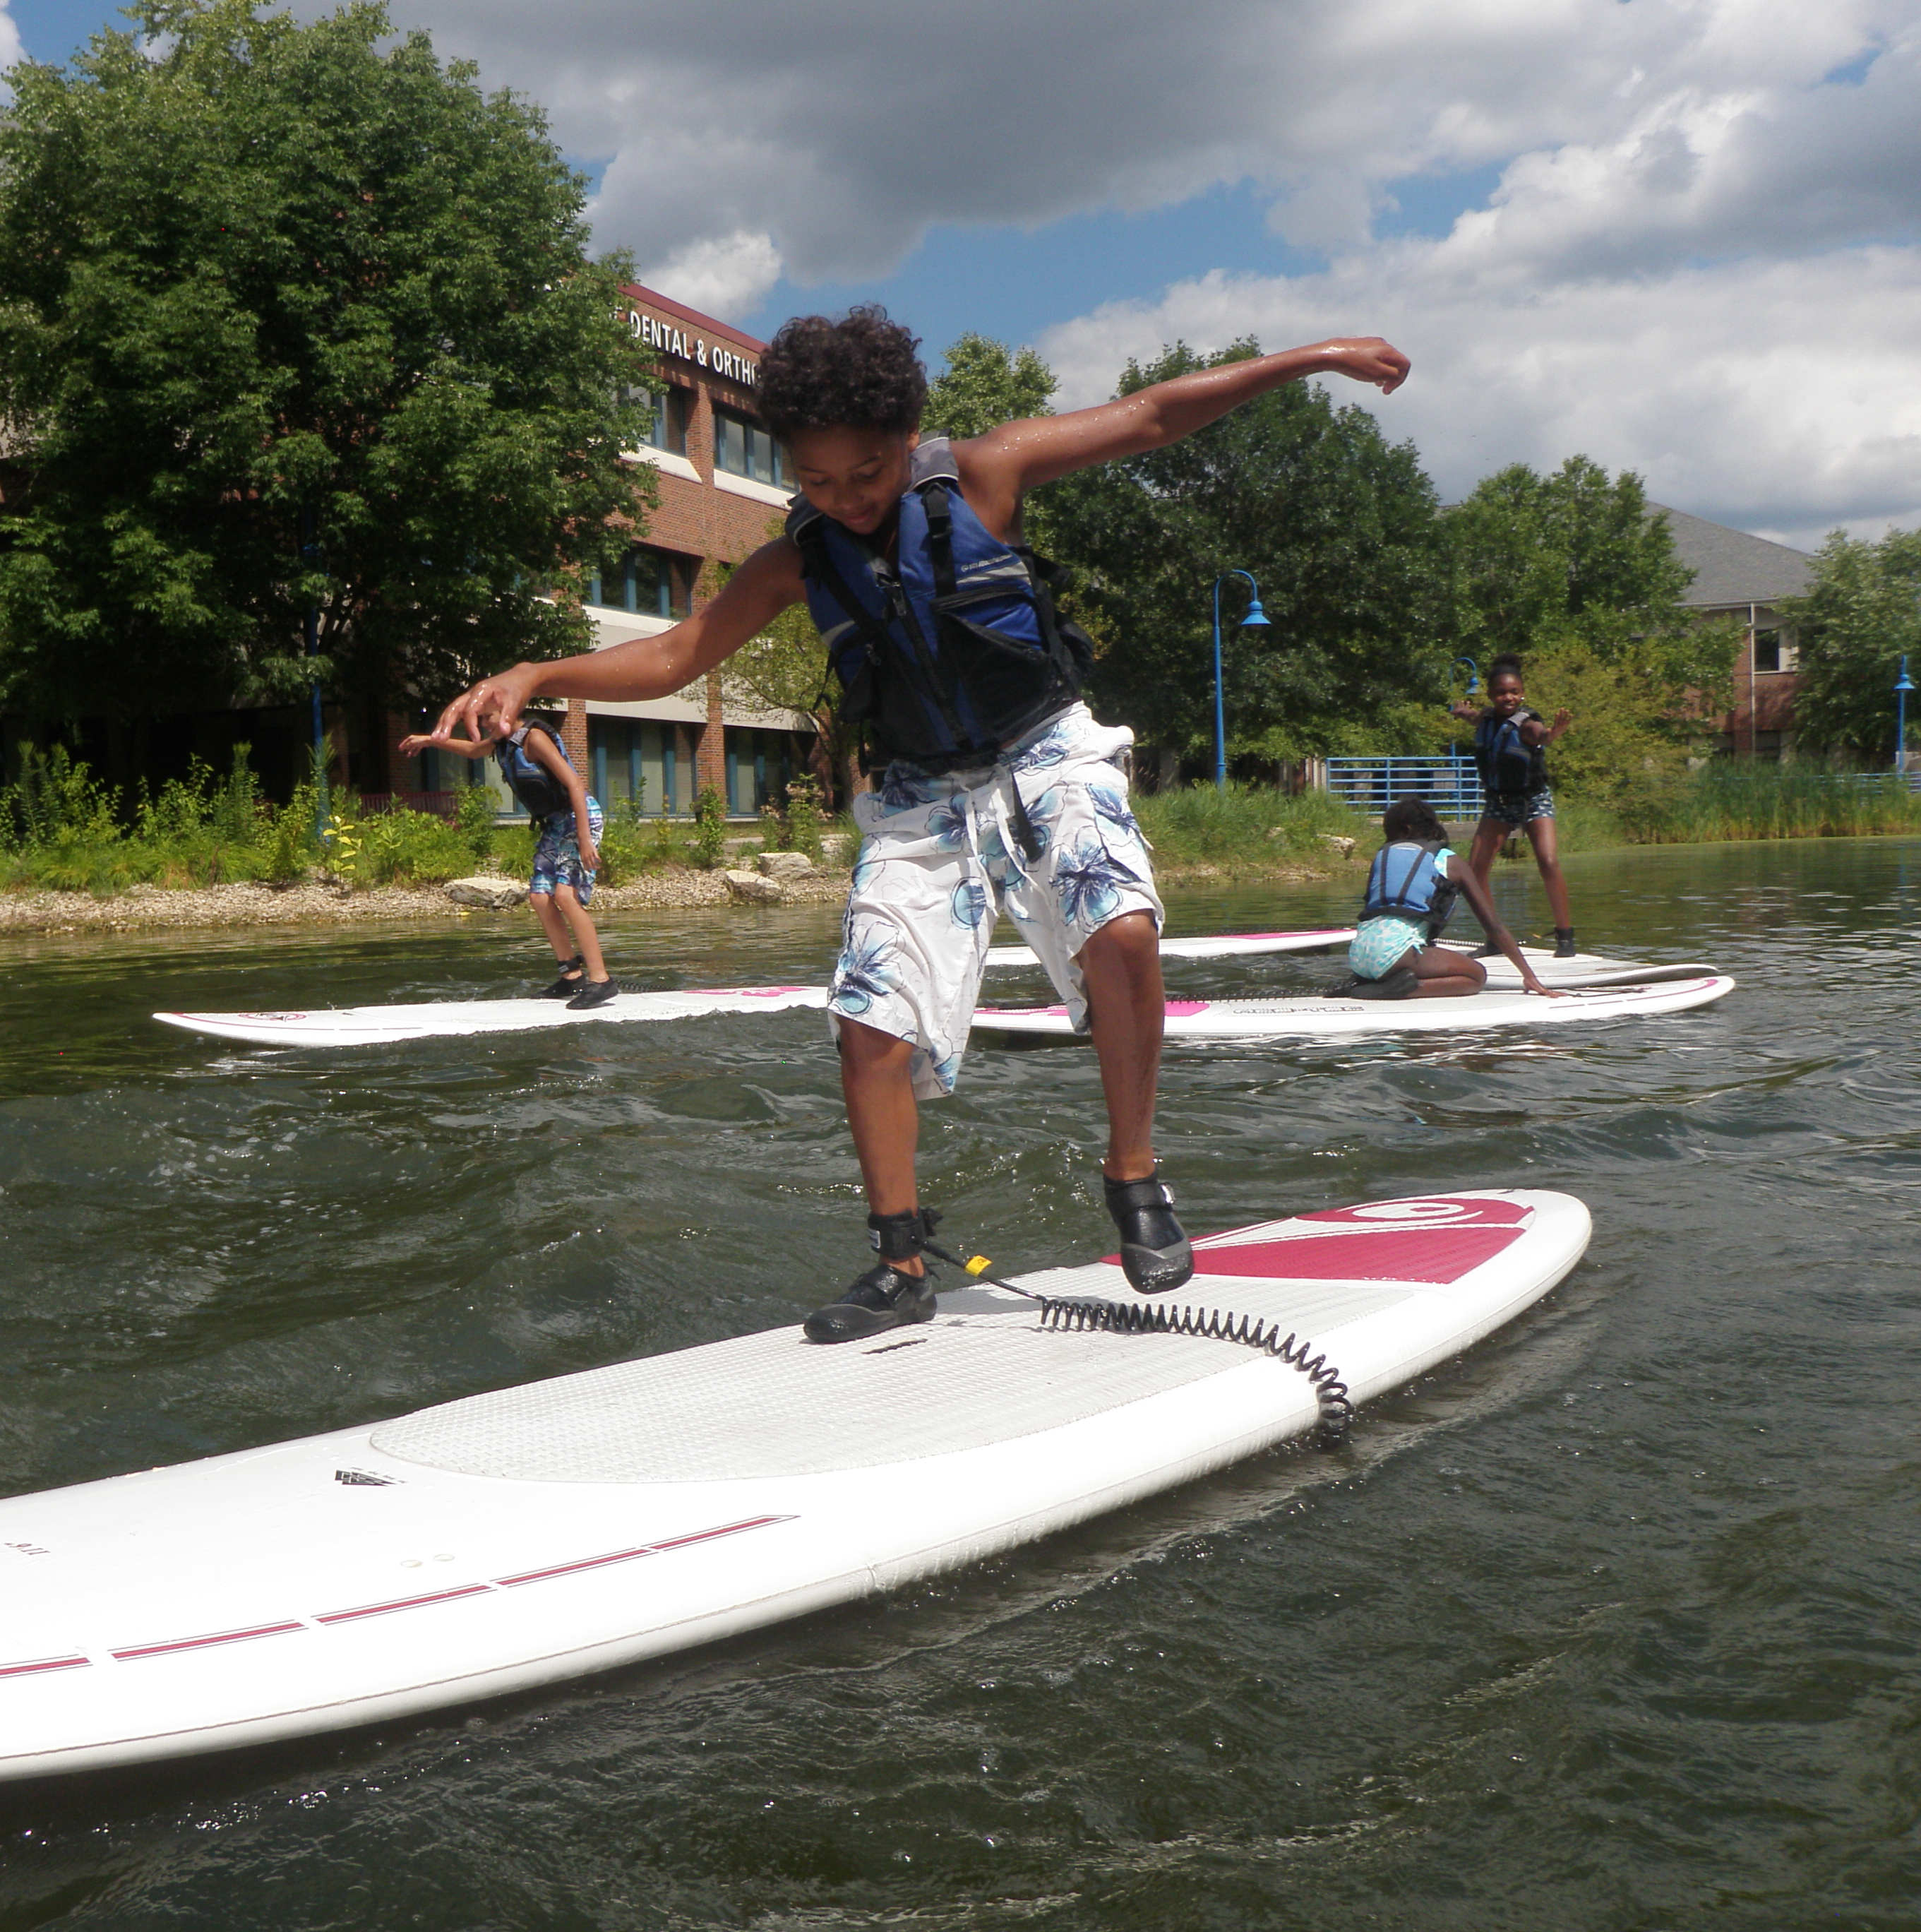 Teen Stand Up Paddling